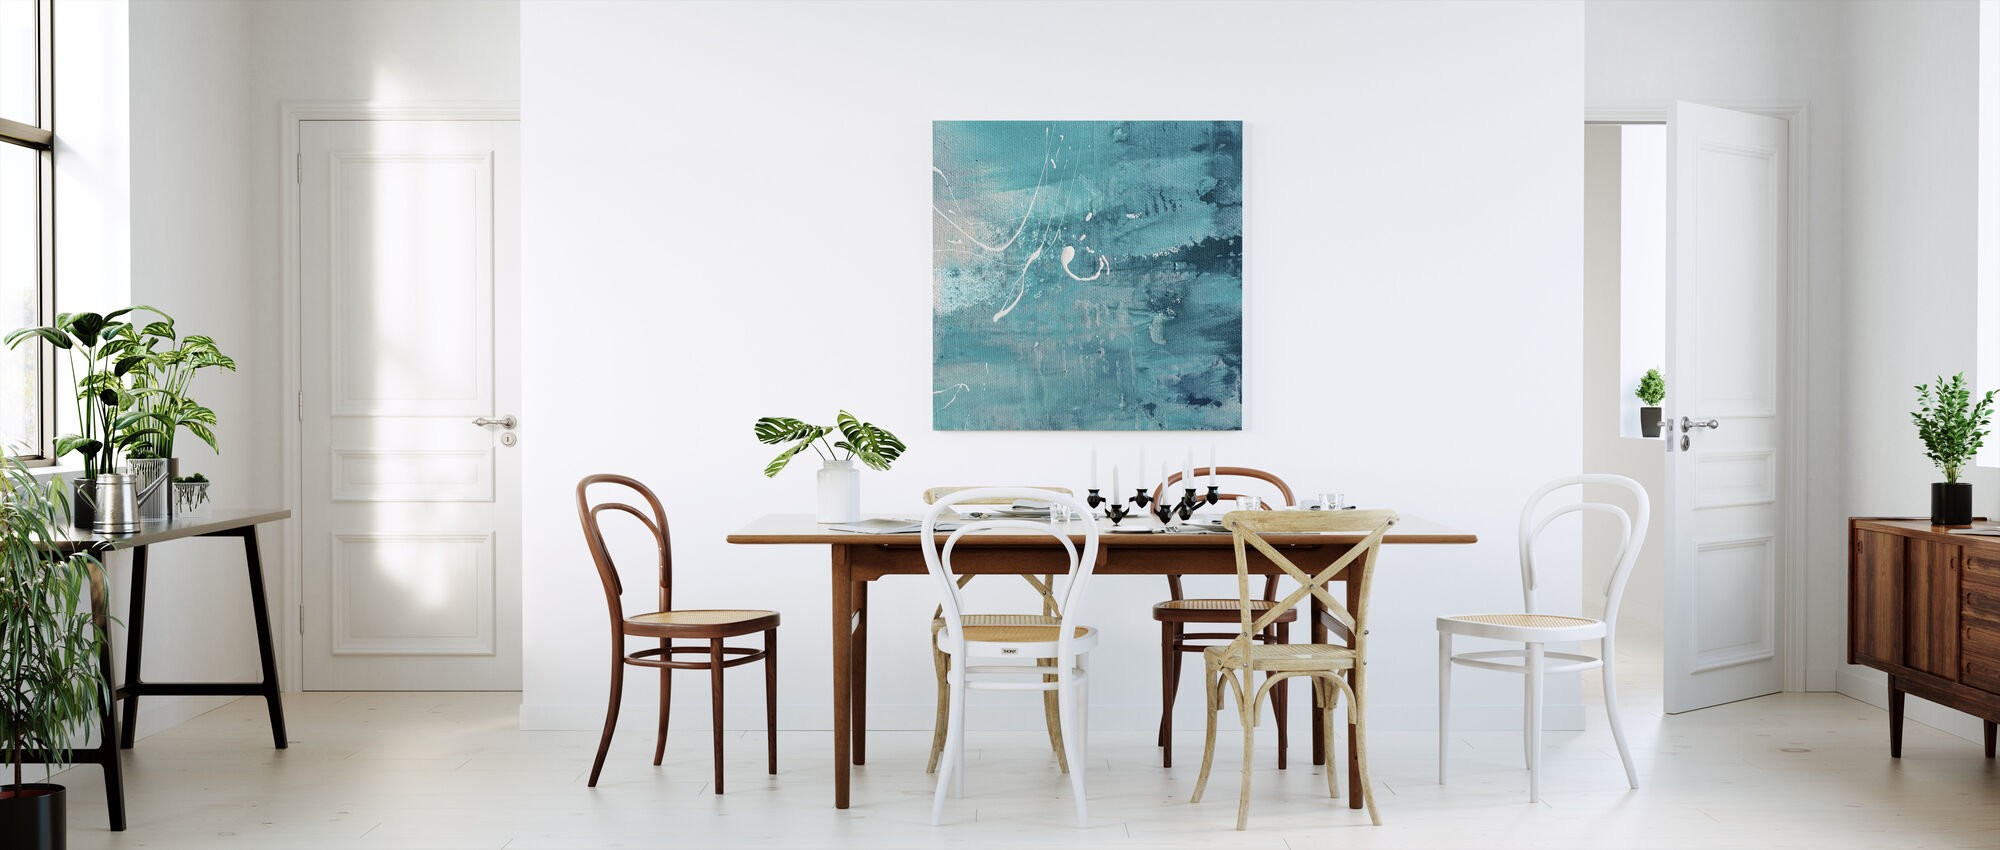 After Turquoise - Canvas print - Kitchen